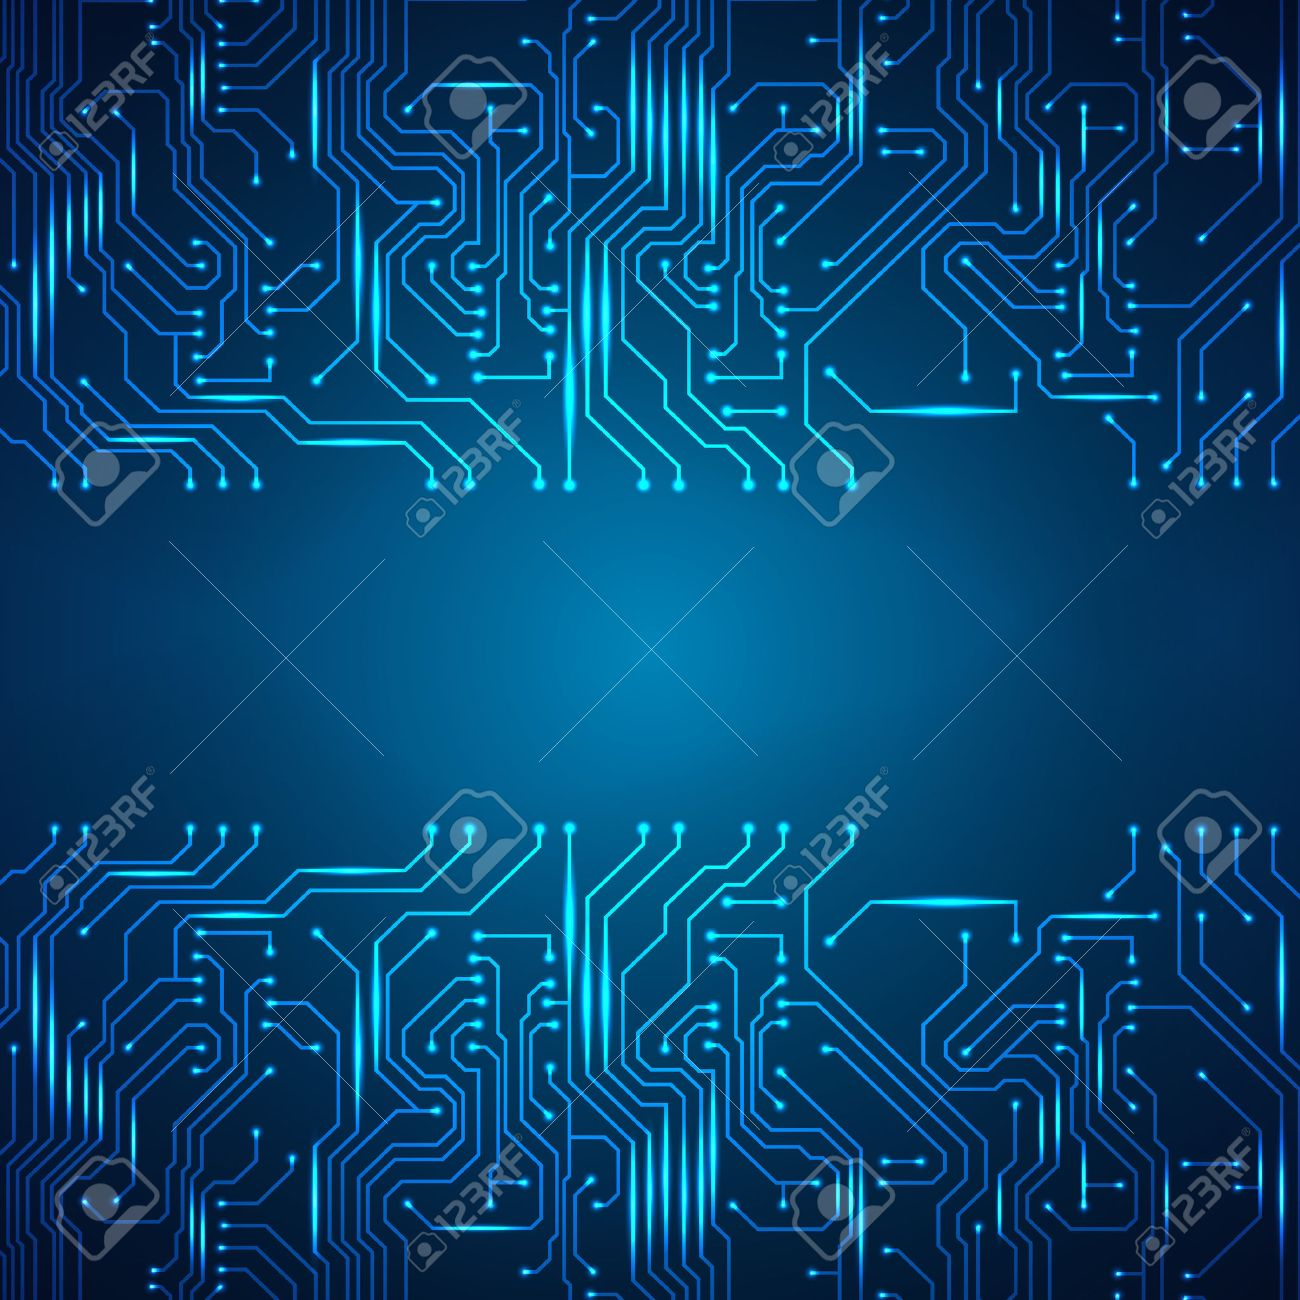 Circuit Board Background. Royalty Free Cliparts, Vectors, And Stock ...